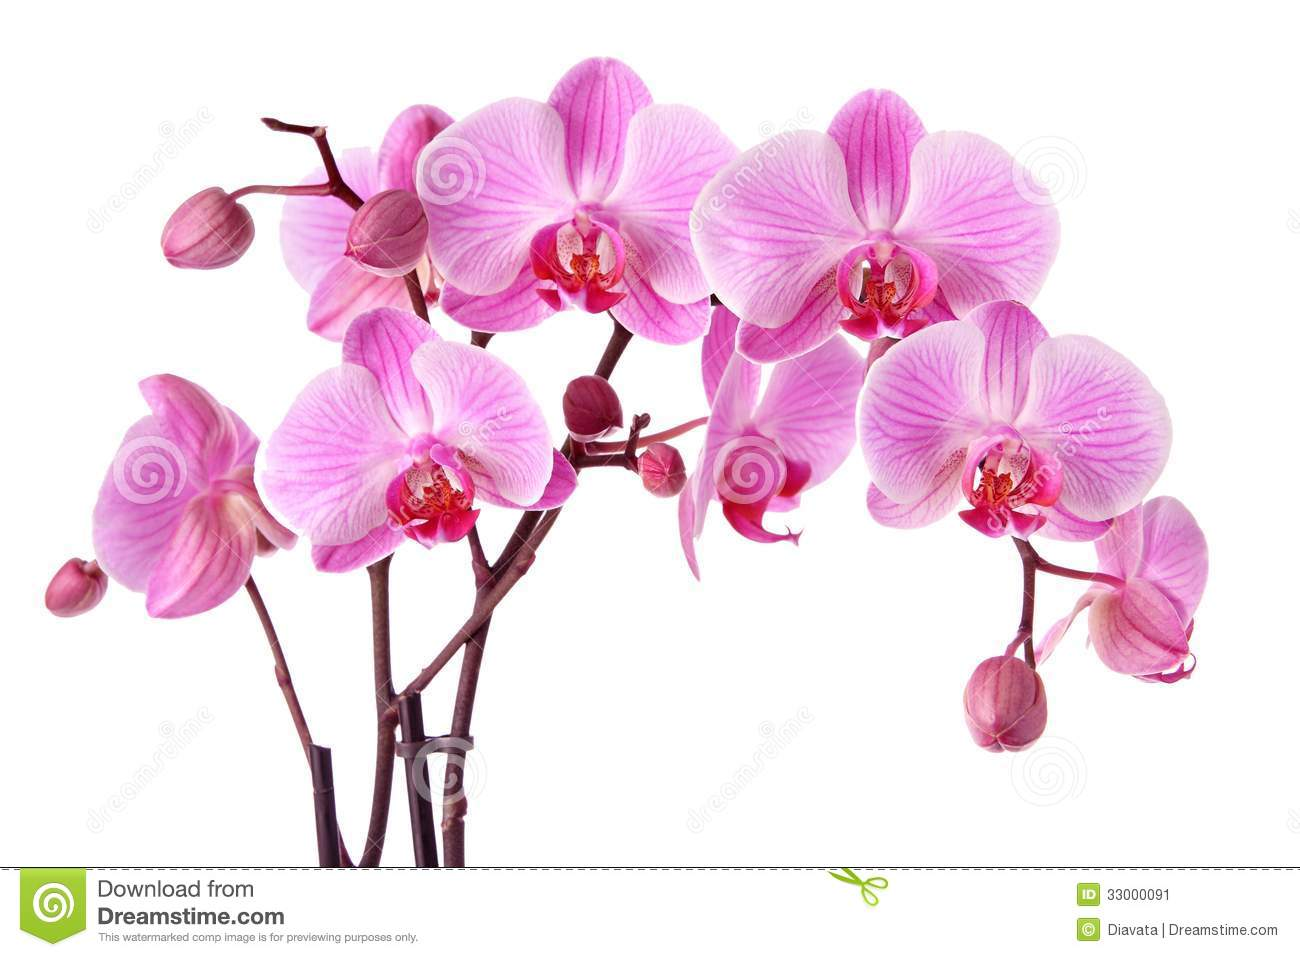 Pink orchids isolated on a white background.